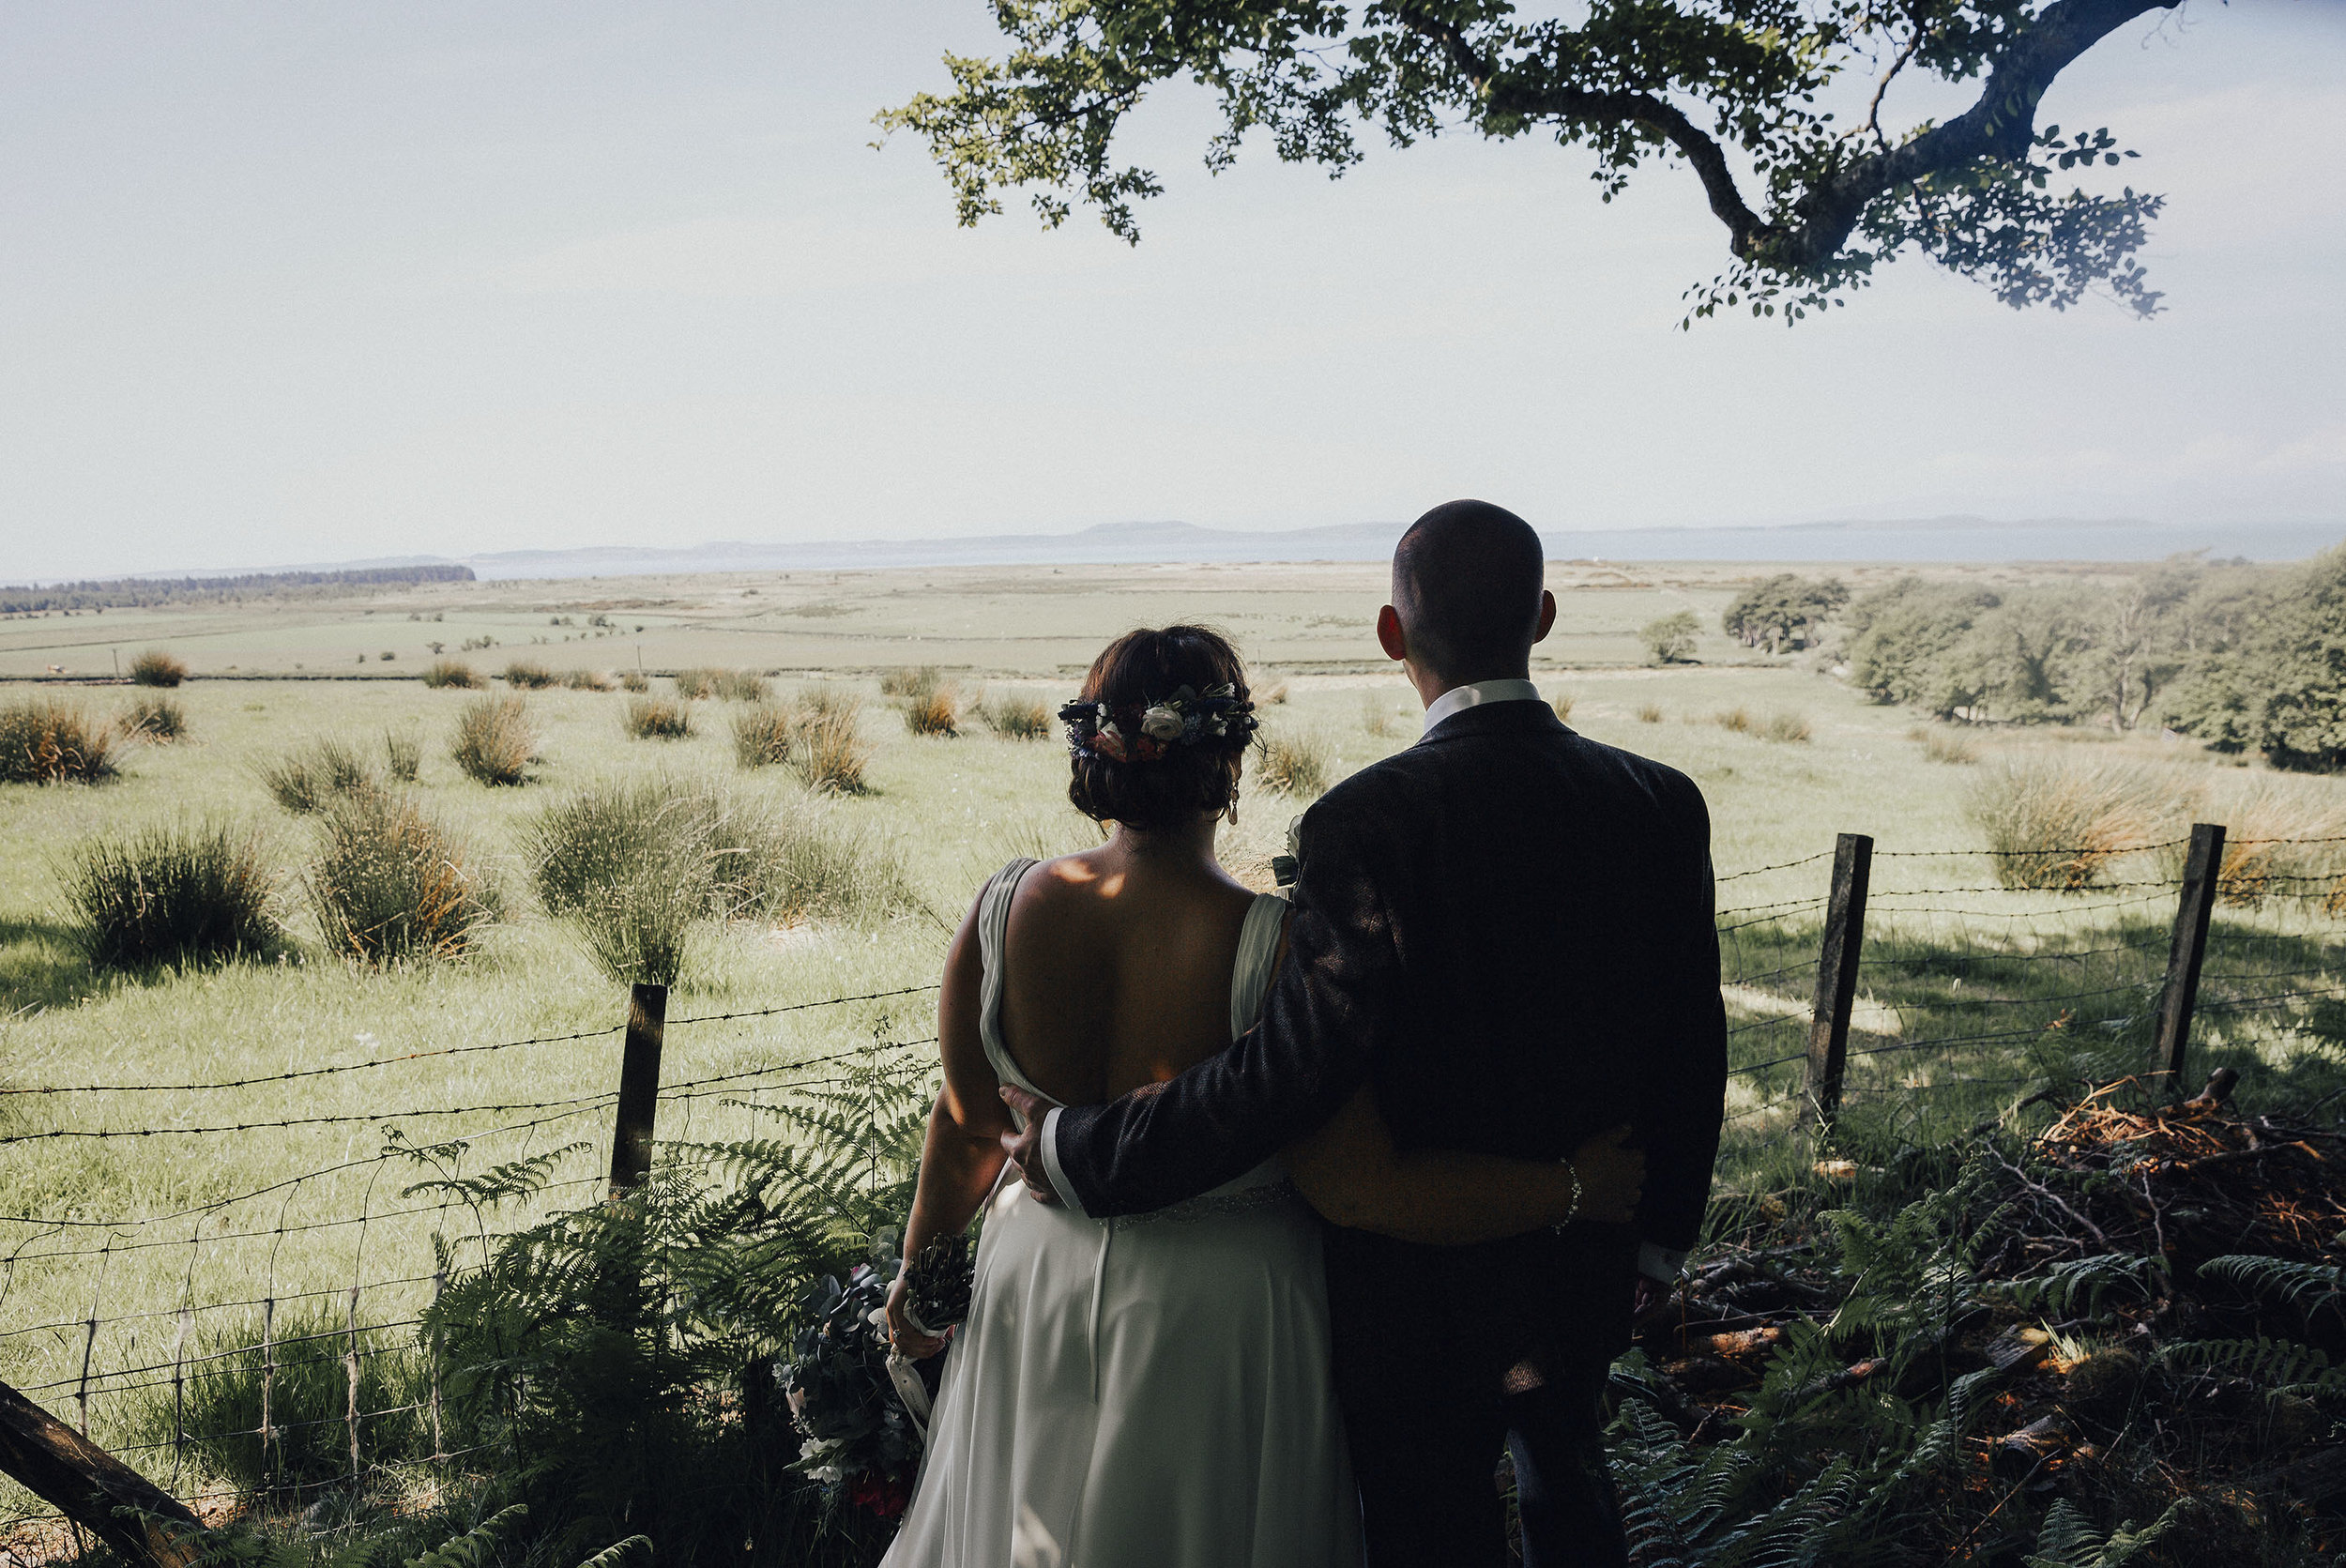 SCOTTISH_ELOPEMENT_PHOTOGRAPHER_PJ_PHILLIPS_PHOTOGRAPHY_89.jpg